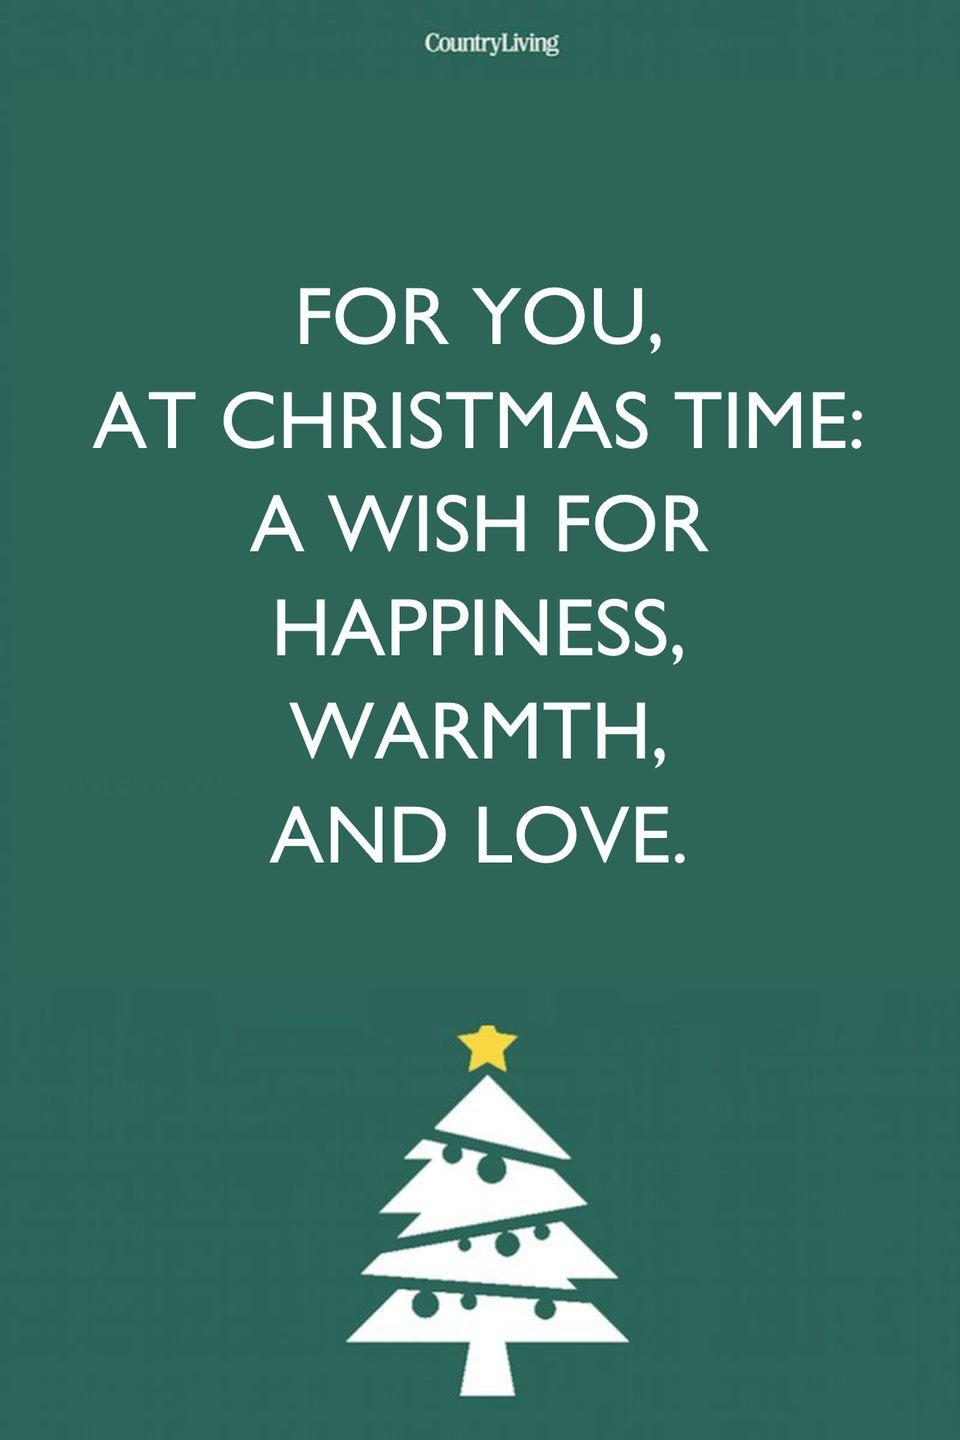 <p>For you, at Christmas time: a wish for happiness, warmth, and love.</p>